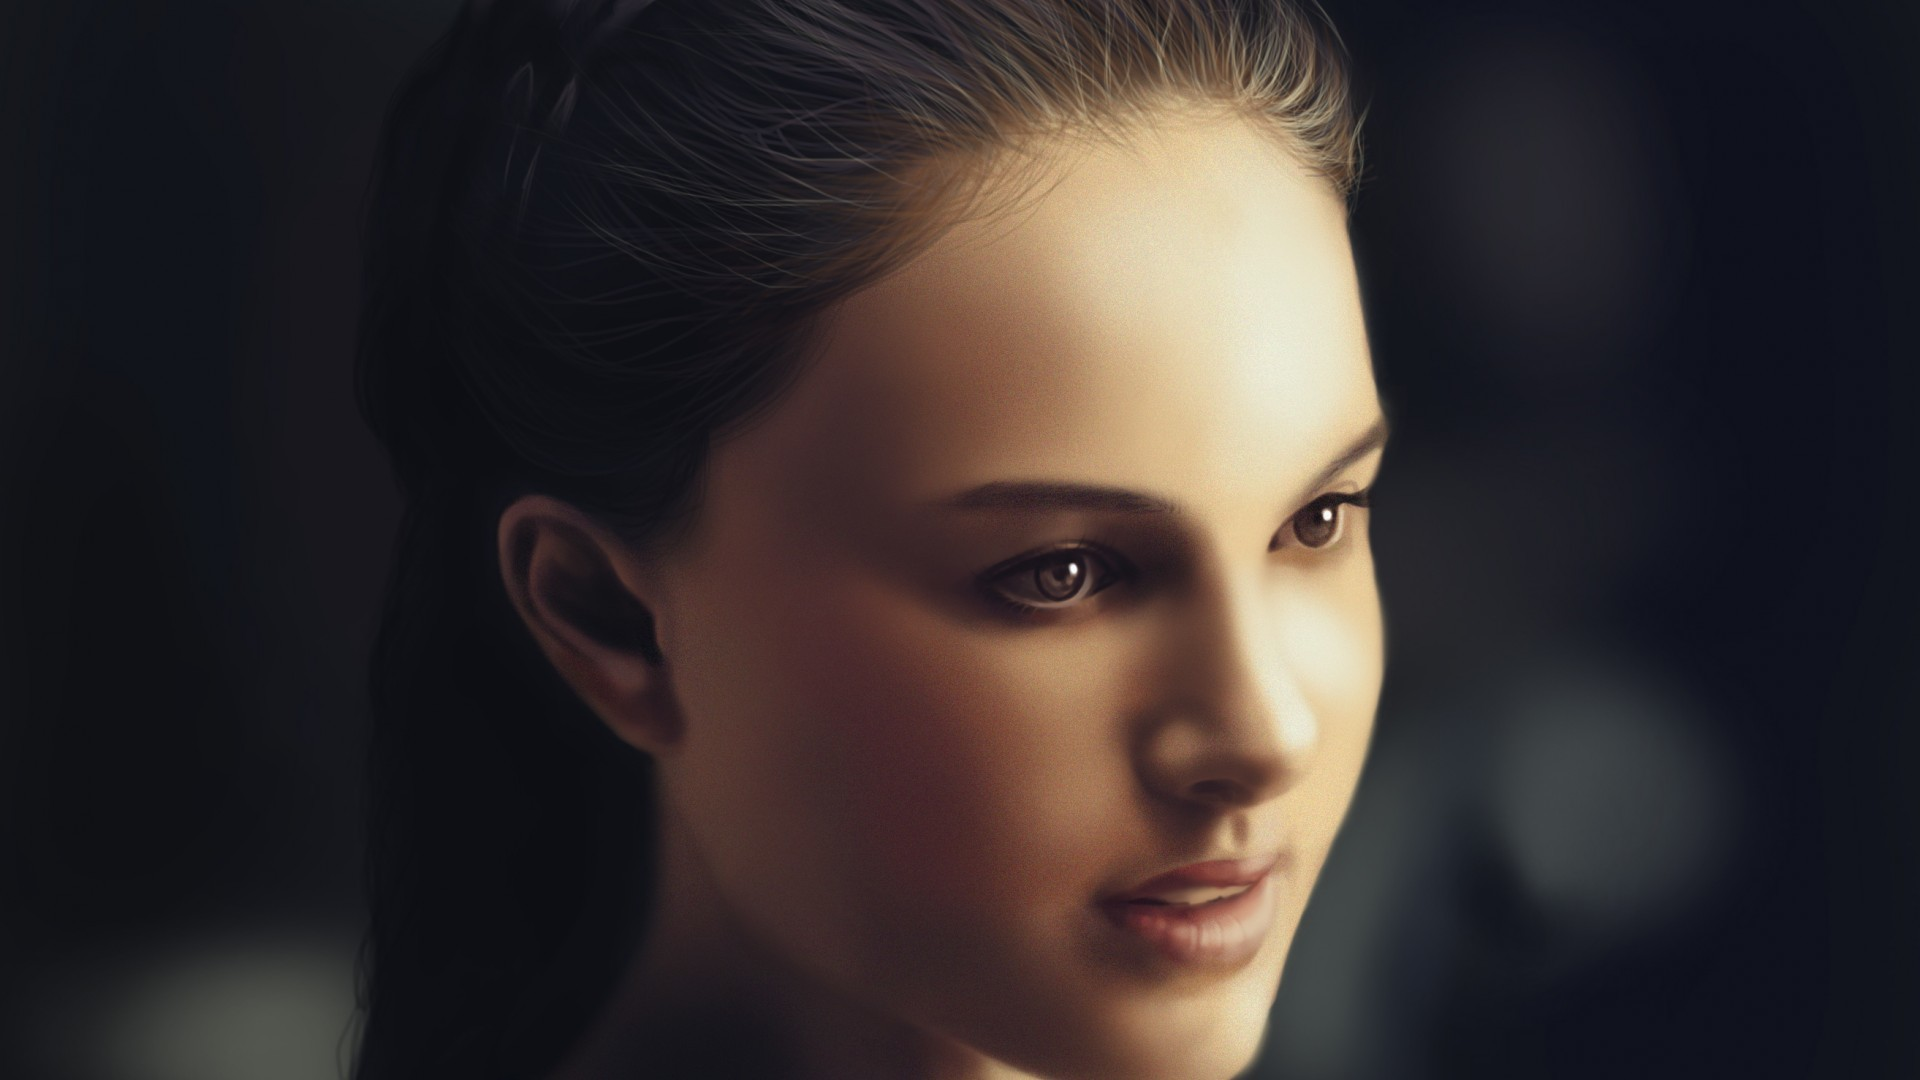 Natalie Portman artwork Celebrity HD Wallpaper